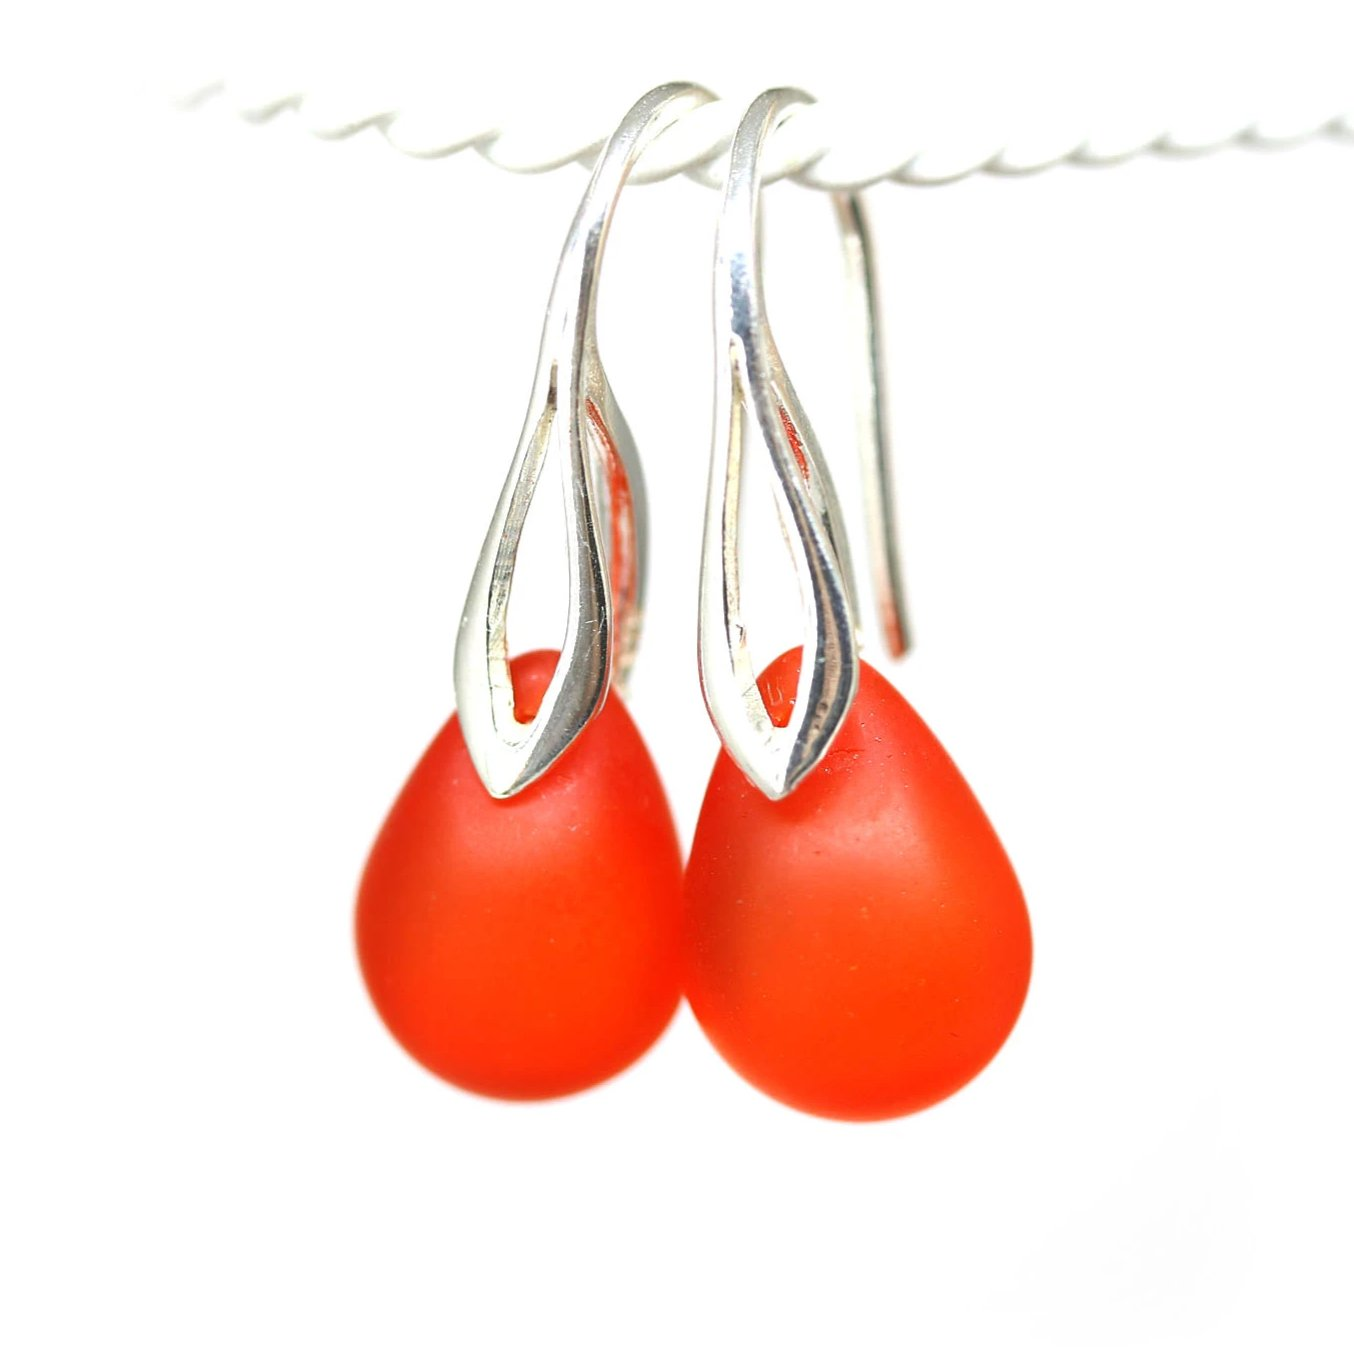 Frosted red orange drop glass sterling silver earrings  for women